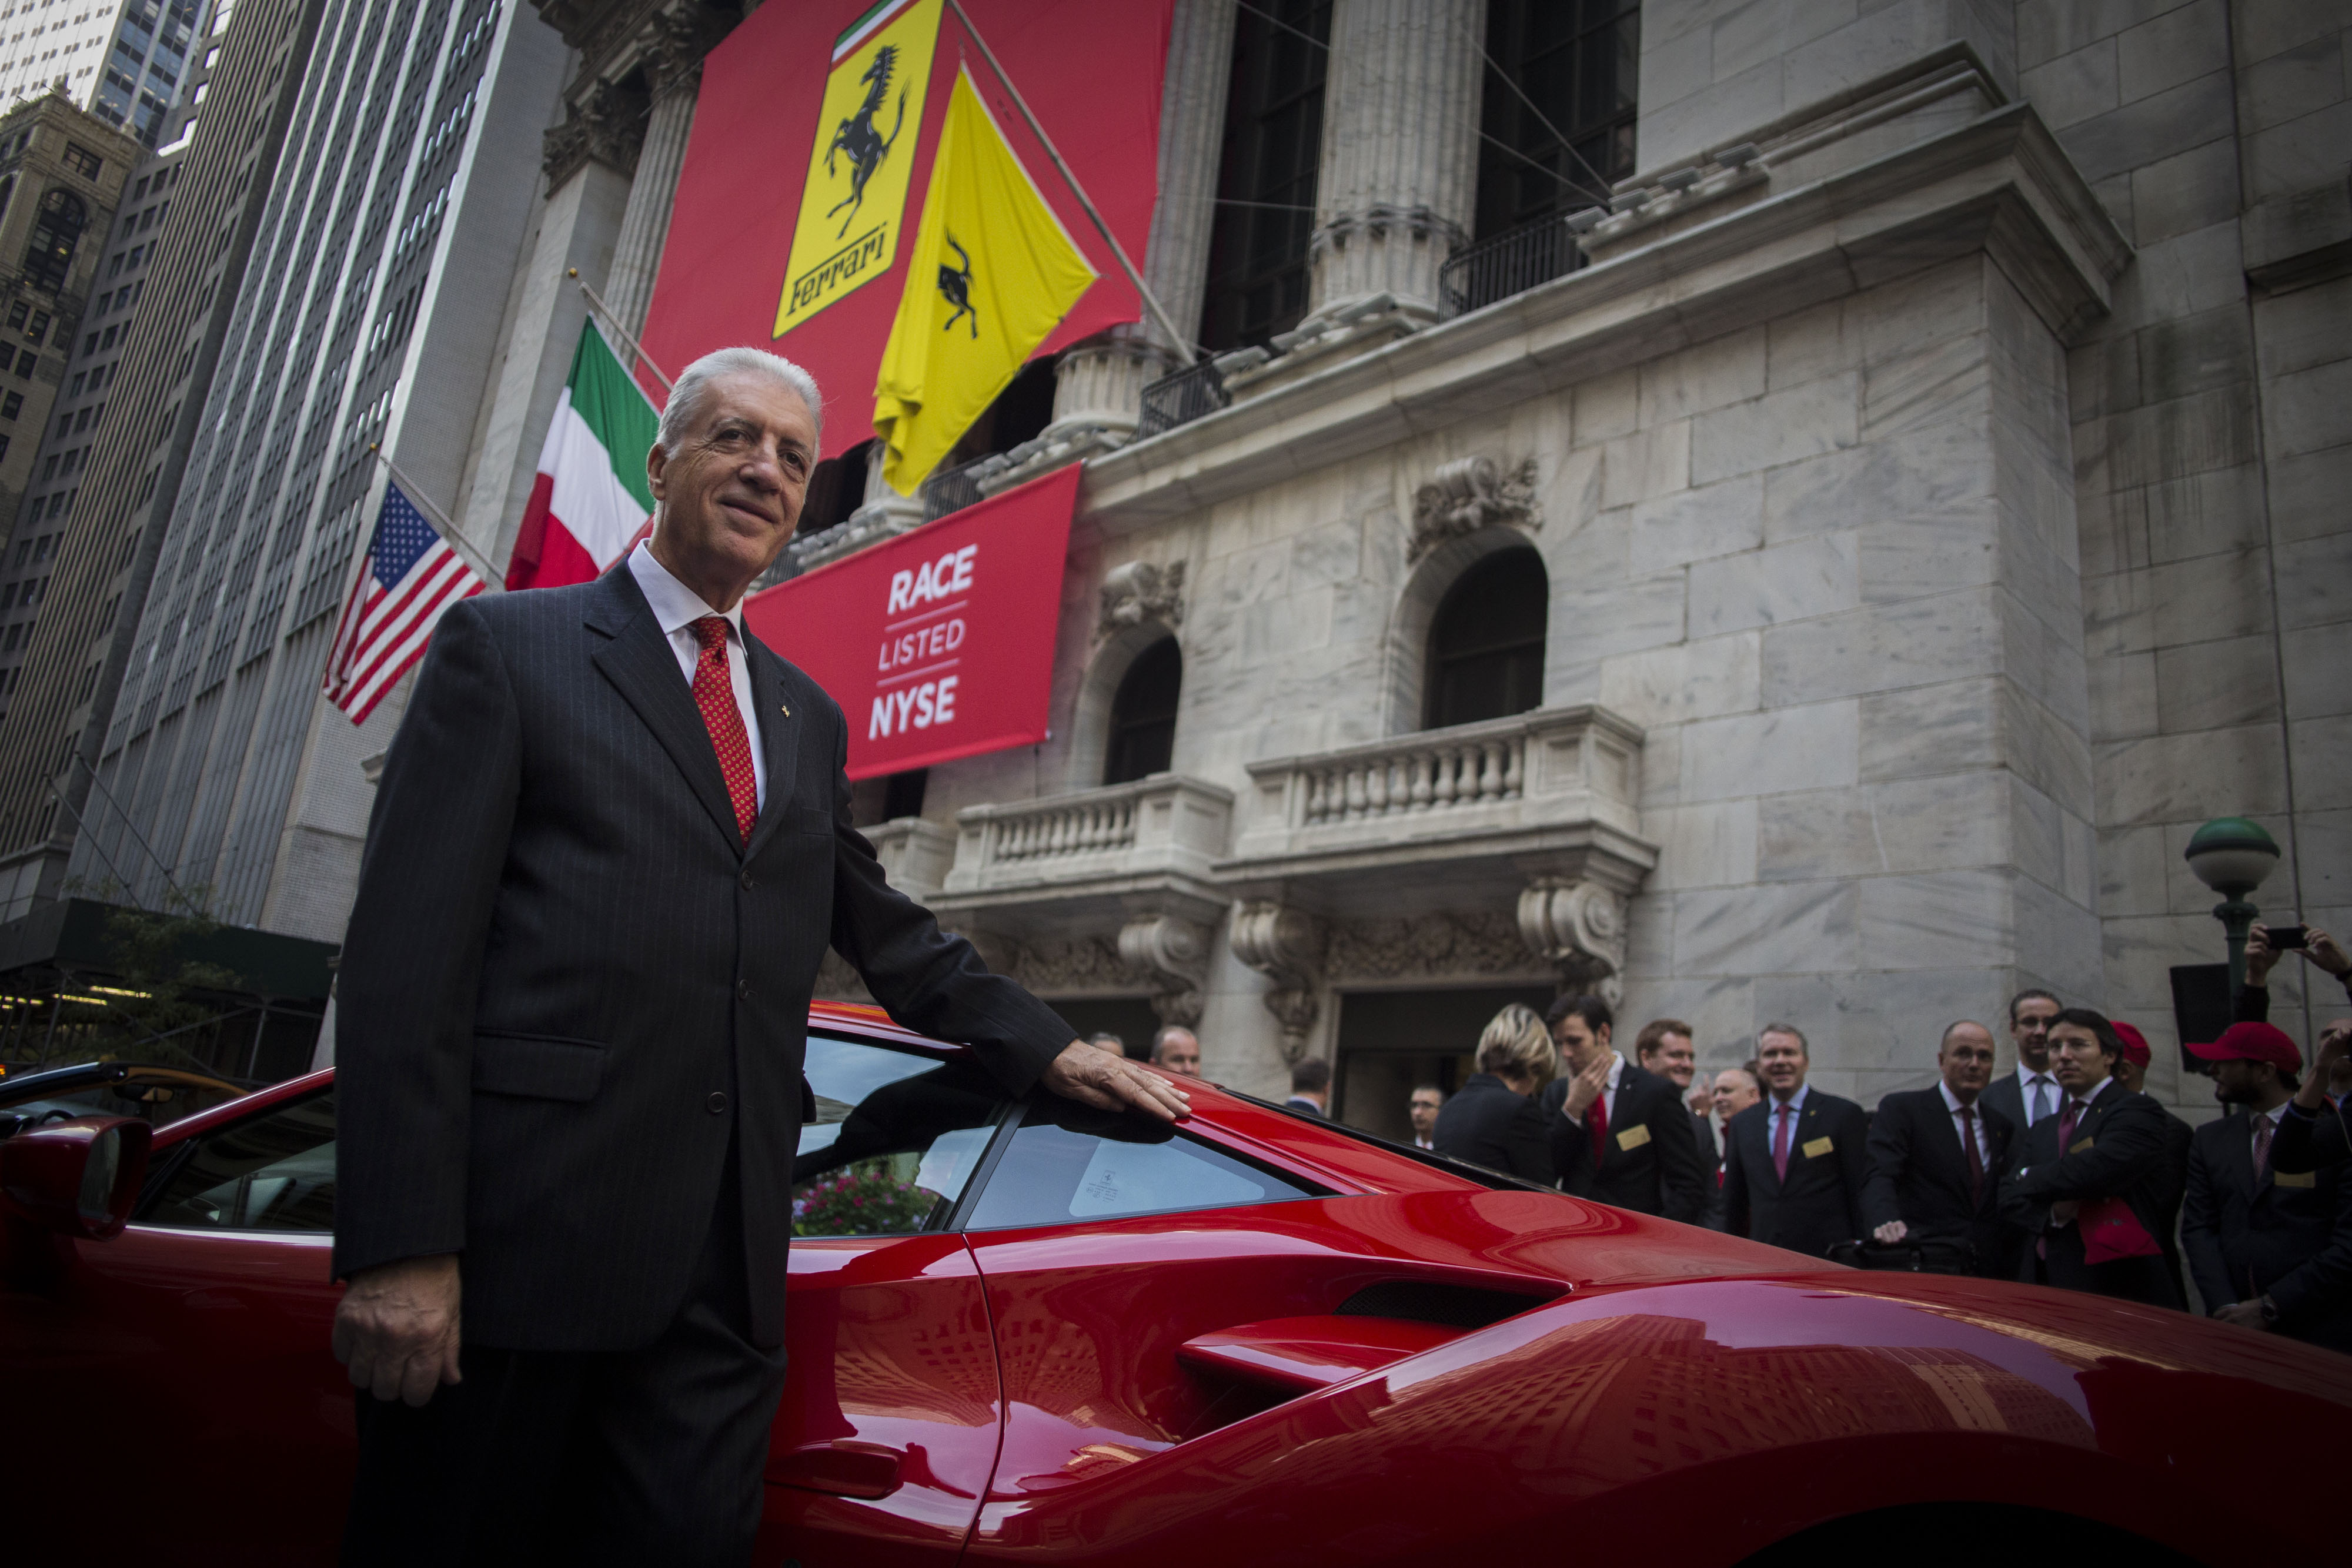 Piero Ferrari, vice chairman of Ferrari SpA, stands for a photograph in front of a Ferrari 488 GTB sports vehicle outside of the New York Stock Exchange (NYSE) in New York, U.S., on Wednesday, Oct. 21, 2015. Ferrari NV climbed as much as 17 percent after its initial public offering, the first step in Fiat Chrysler Automobiles NV's plans to spin off the supercar maker to finance expansion plans. Photographer: John Taggart/Bloomberg *** Local Caption *** Piero Ferrari